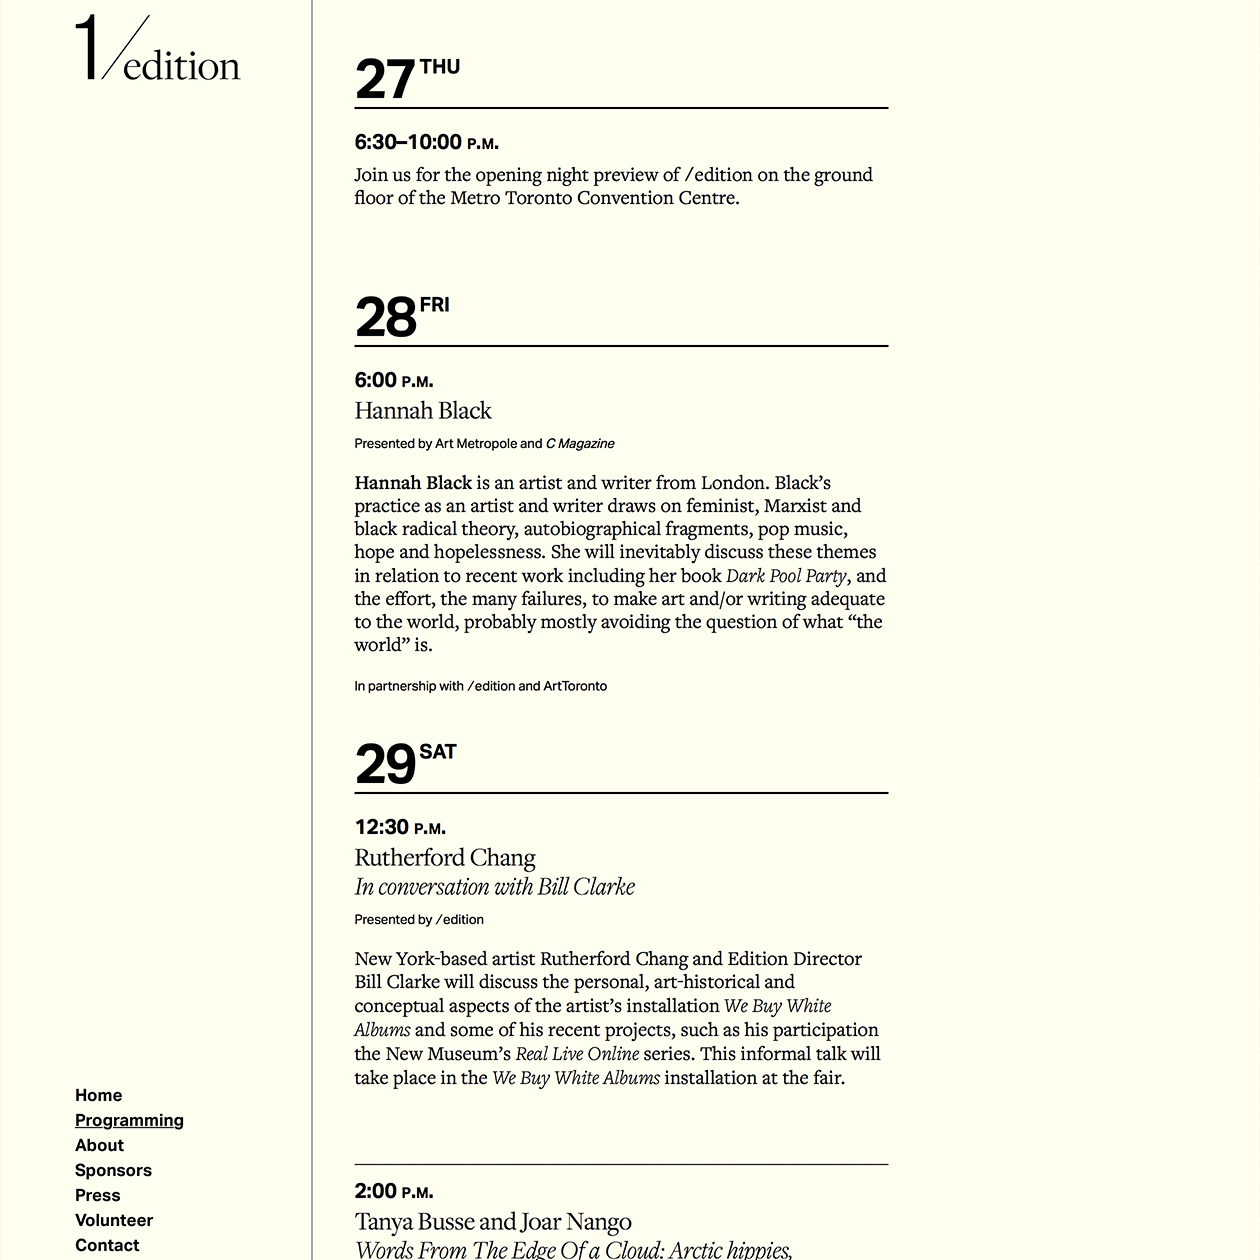 Fonts Used: Freight Display, Freight Text, and Aktiv Grotesk